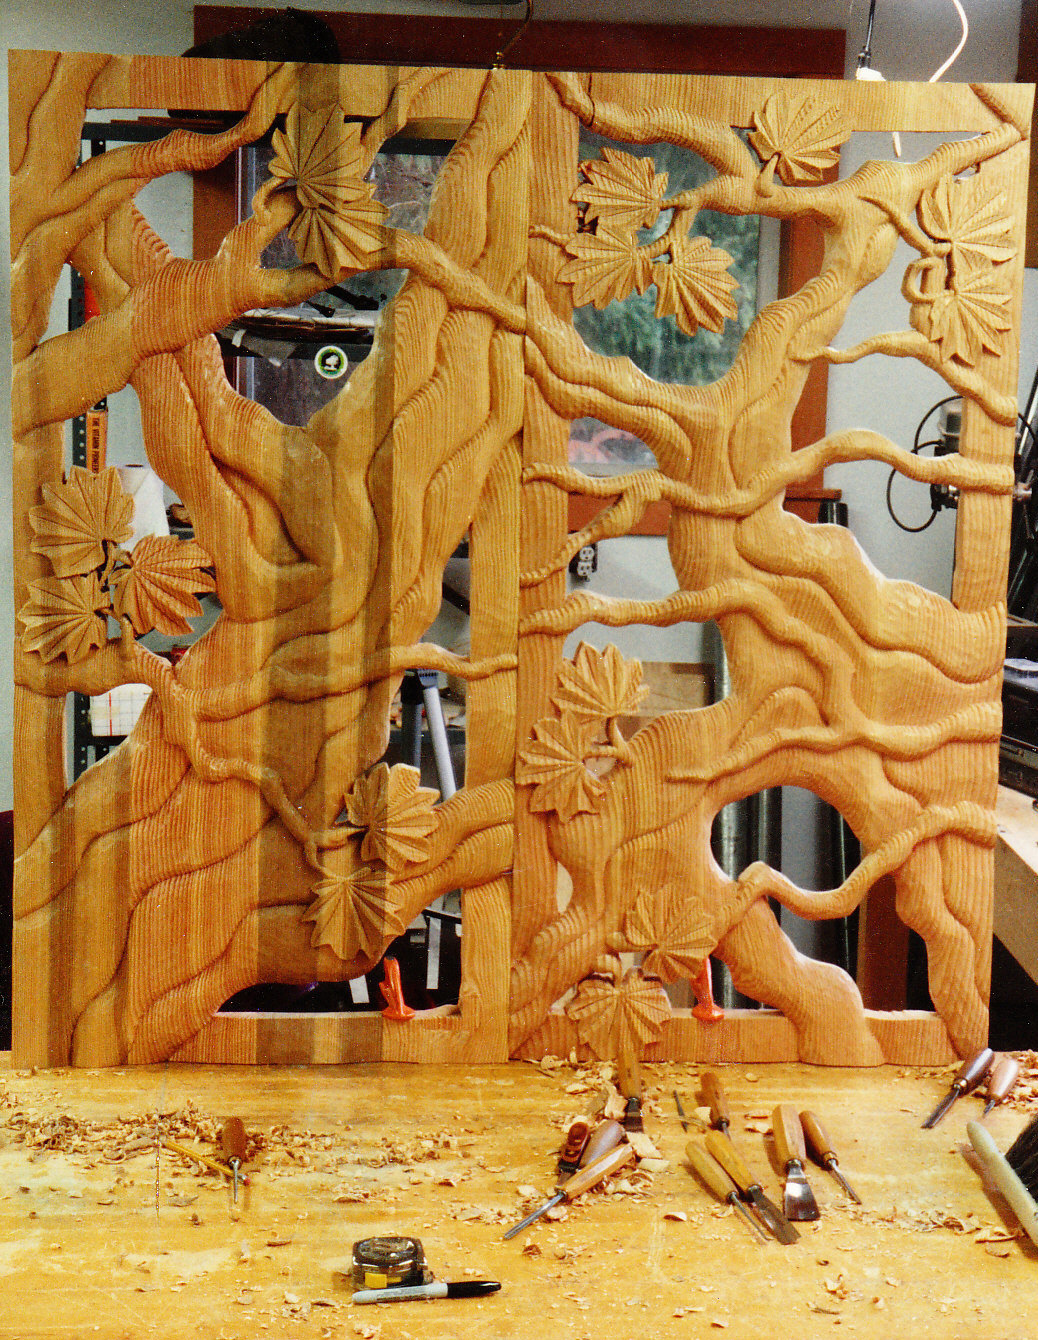 Jude Fritts Wood Carving & Sculpture - Custom Carving, Large Scale ...